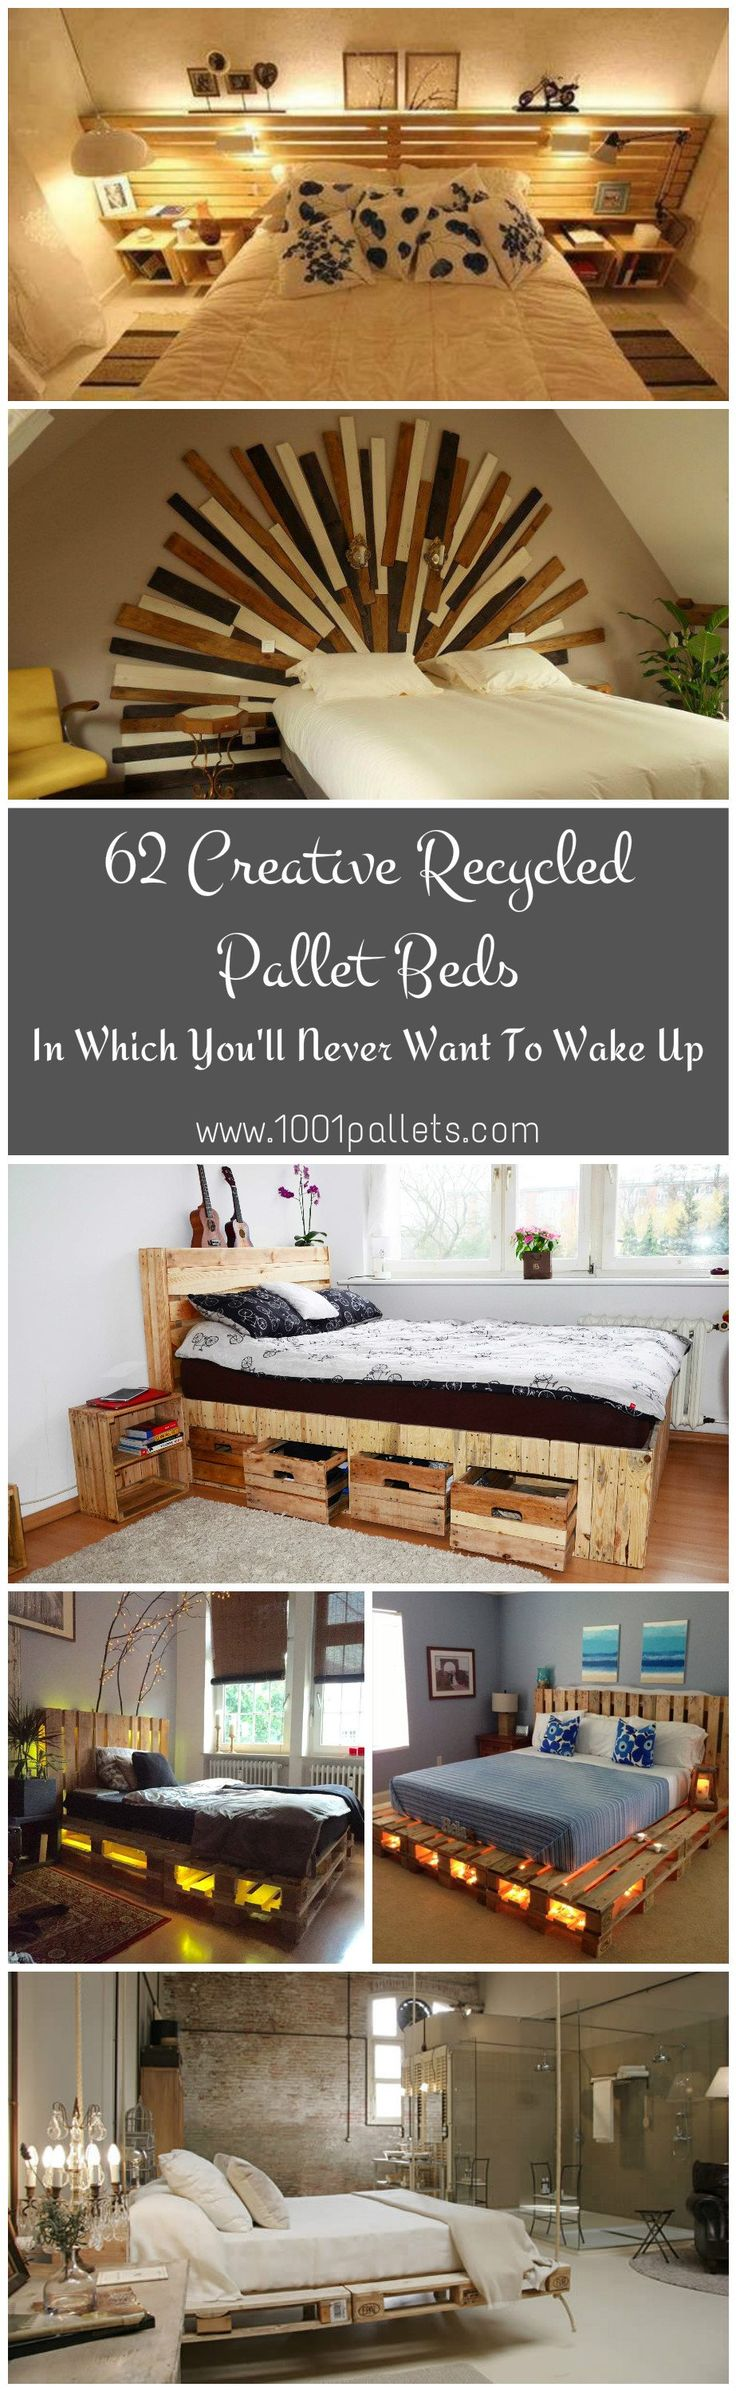 At 1001Pallets, we regularly receive creative ideas of beds made from recycled pallets. Today we will present you a selection of 62 beds, bed frames and headboards made from recycled pallets. Those beds are so beautiful that you'll never want to wake up from them, maybe that could be a good excuse to justify your delay to your boss :)